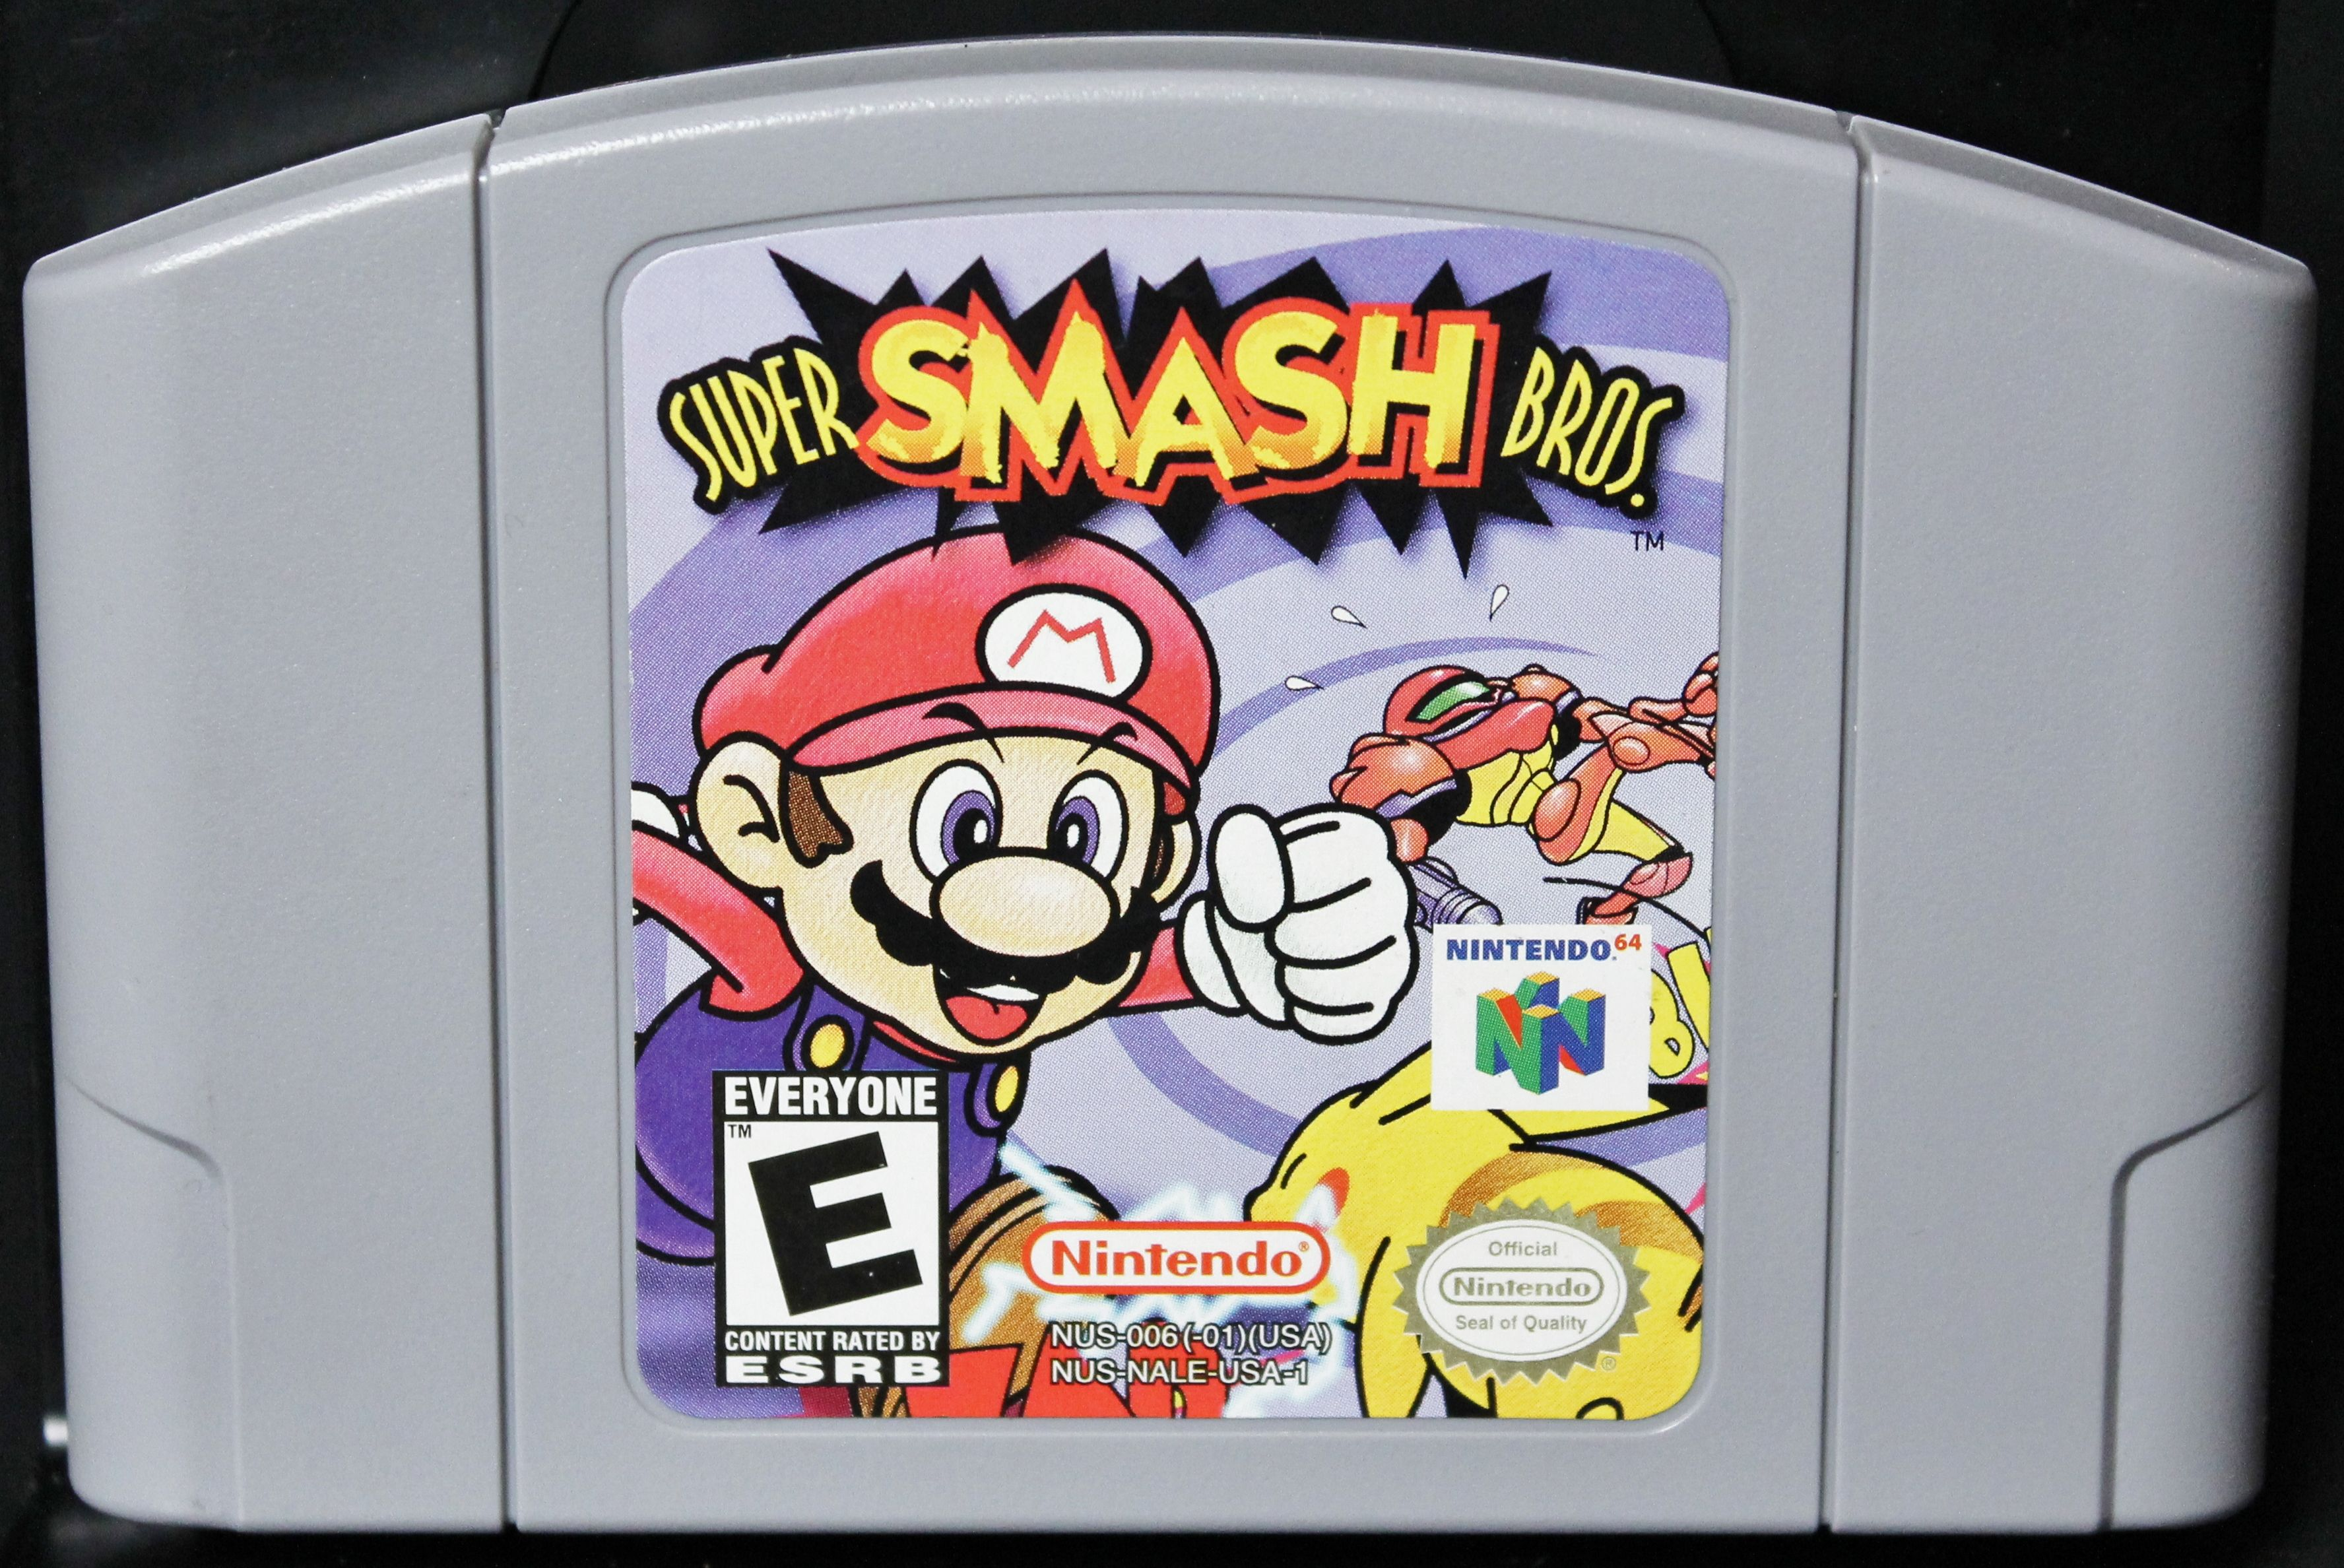 Duke It Out As Your Favorite Nintendo Characters Super Smash Bros For The Nintendo 64 Www Warpzoneonline C Smash Bros Super Smash Bros Game Super Smash Bros